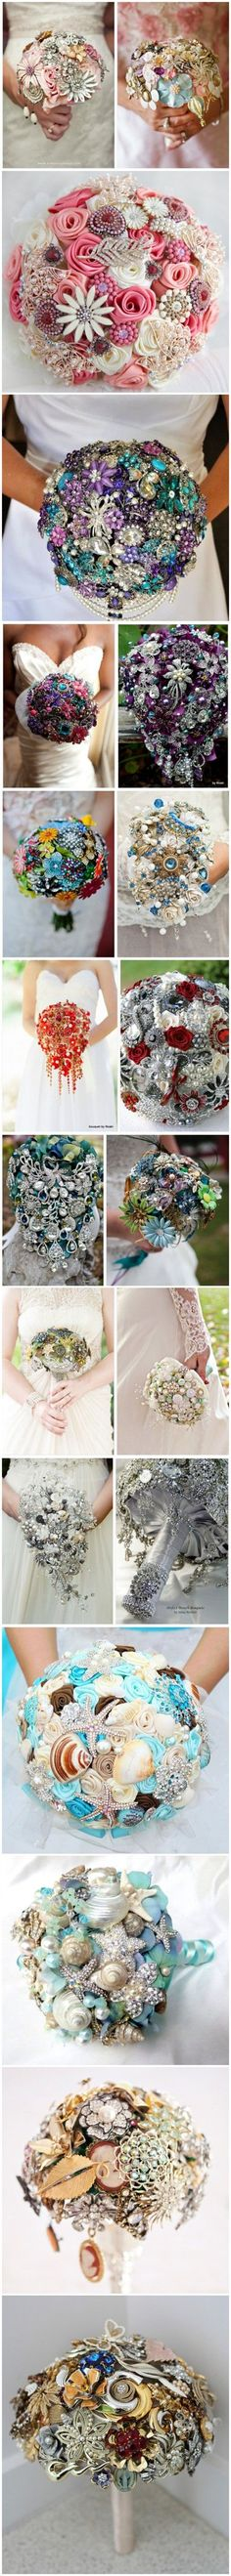 TOP 20 Chic Brooch Wedding Bouquets I once did a wedding where this was the bouquet. Super heavy, but still my favorite bouquet ever. Broach Bouquet, Wedding Brooch Bouquets, Bride Bouquets, Pink Bouquet, Purple Bouquets, Bridesmaid Bouquets, Peonies Bouquet, Flower Bouquets, Bridesmaids